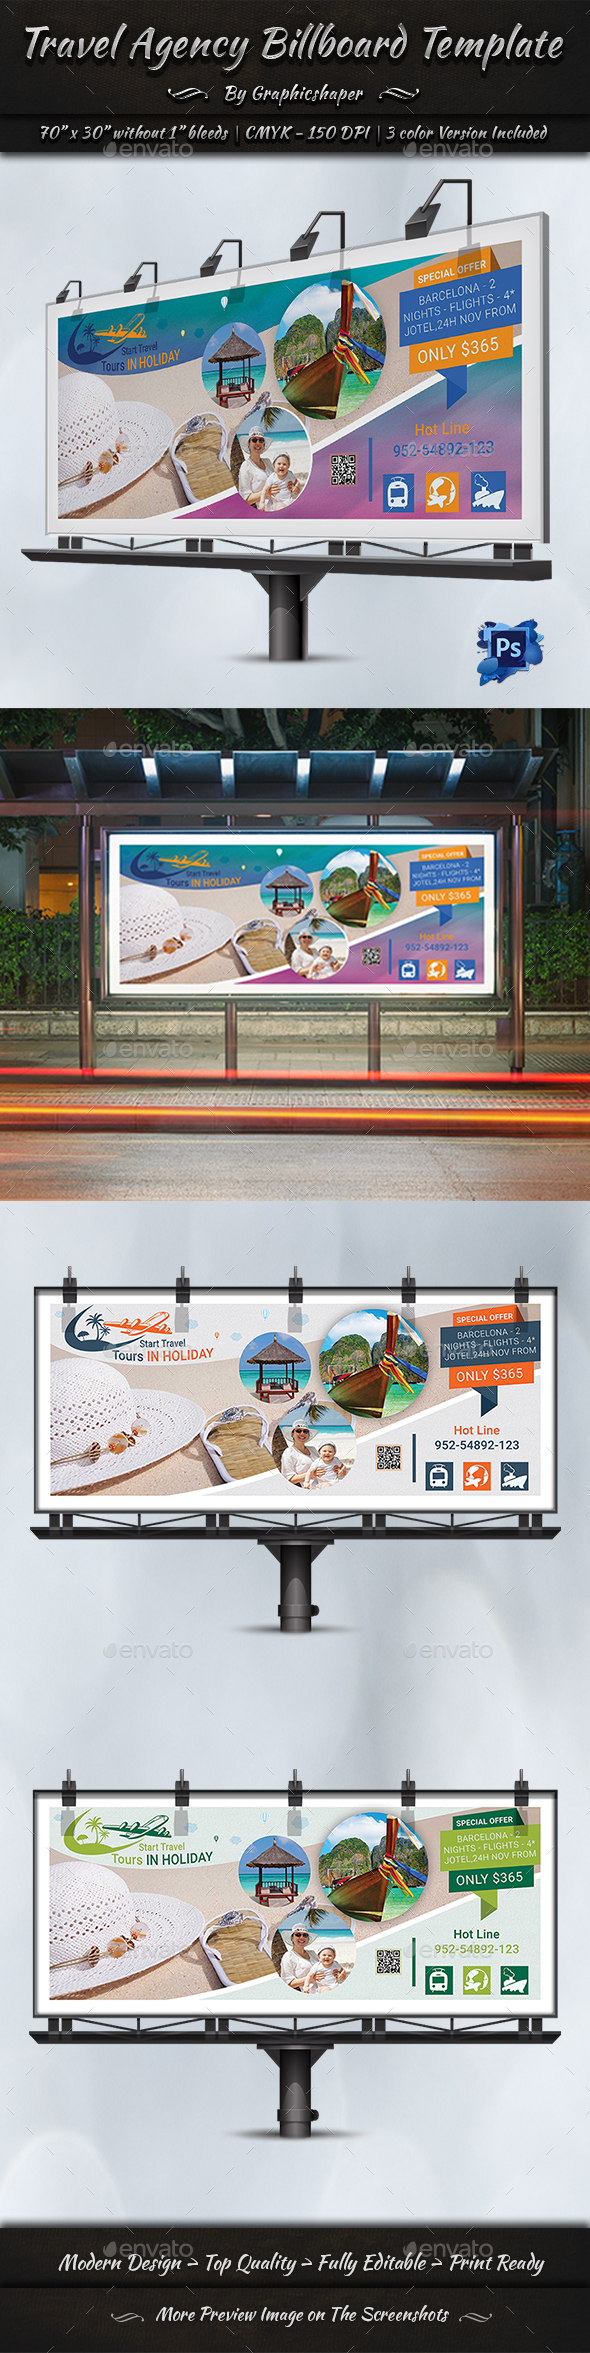 Travel Agency Billboard Template - Signage Print Templates